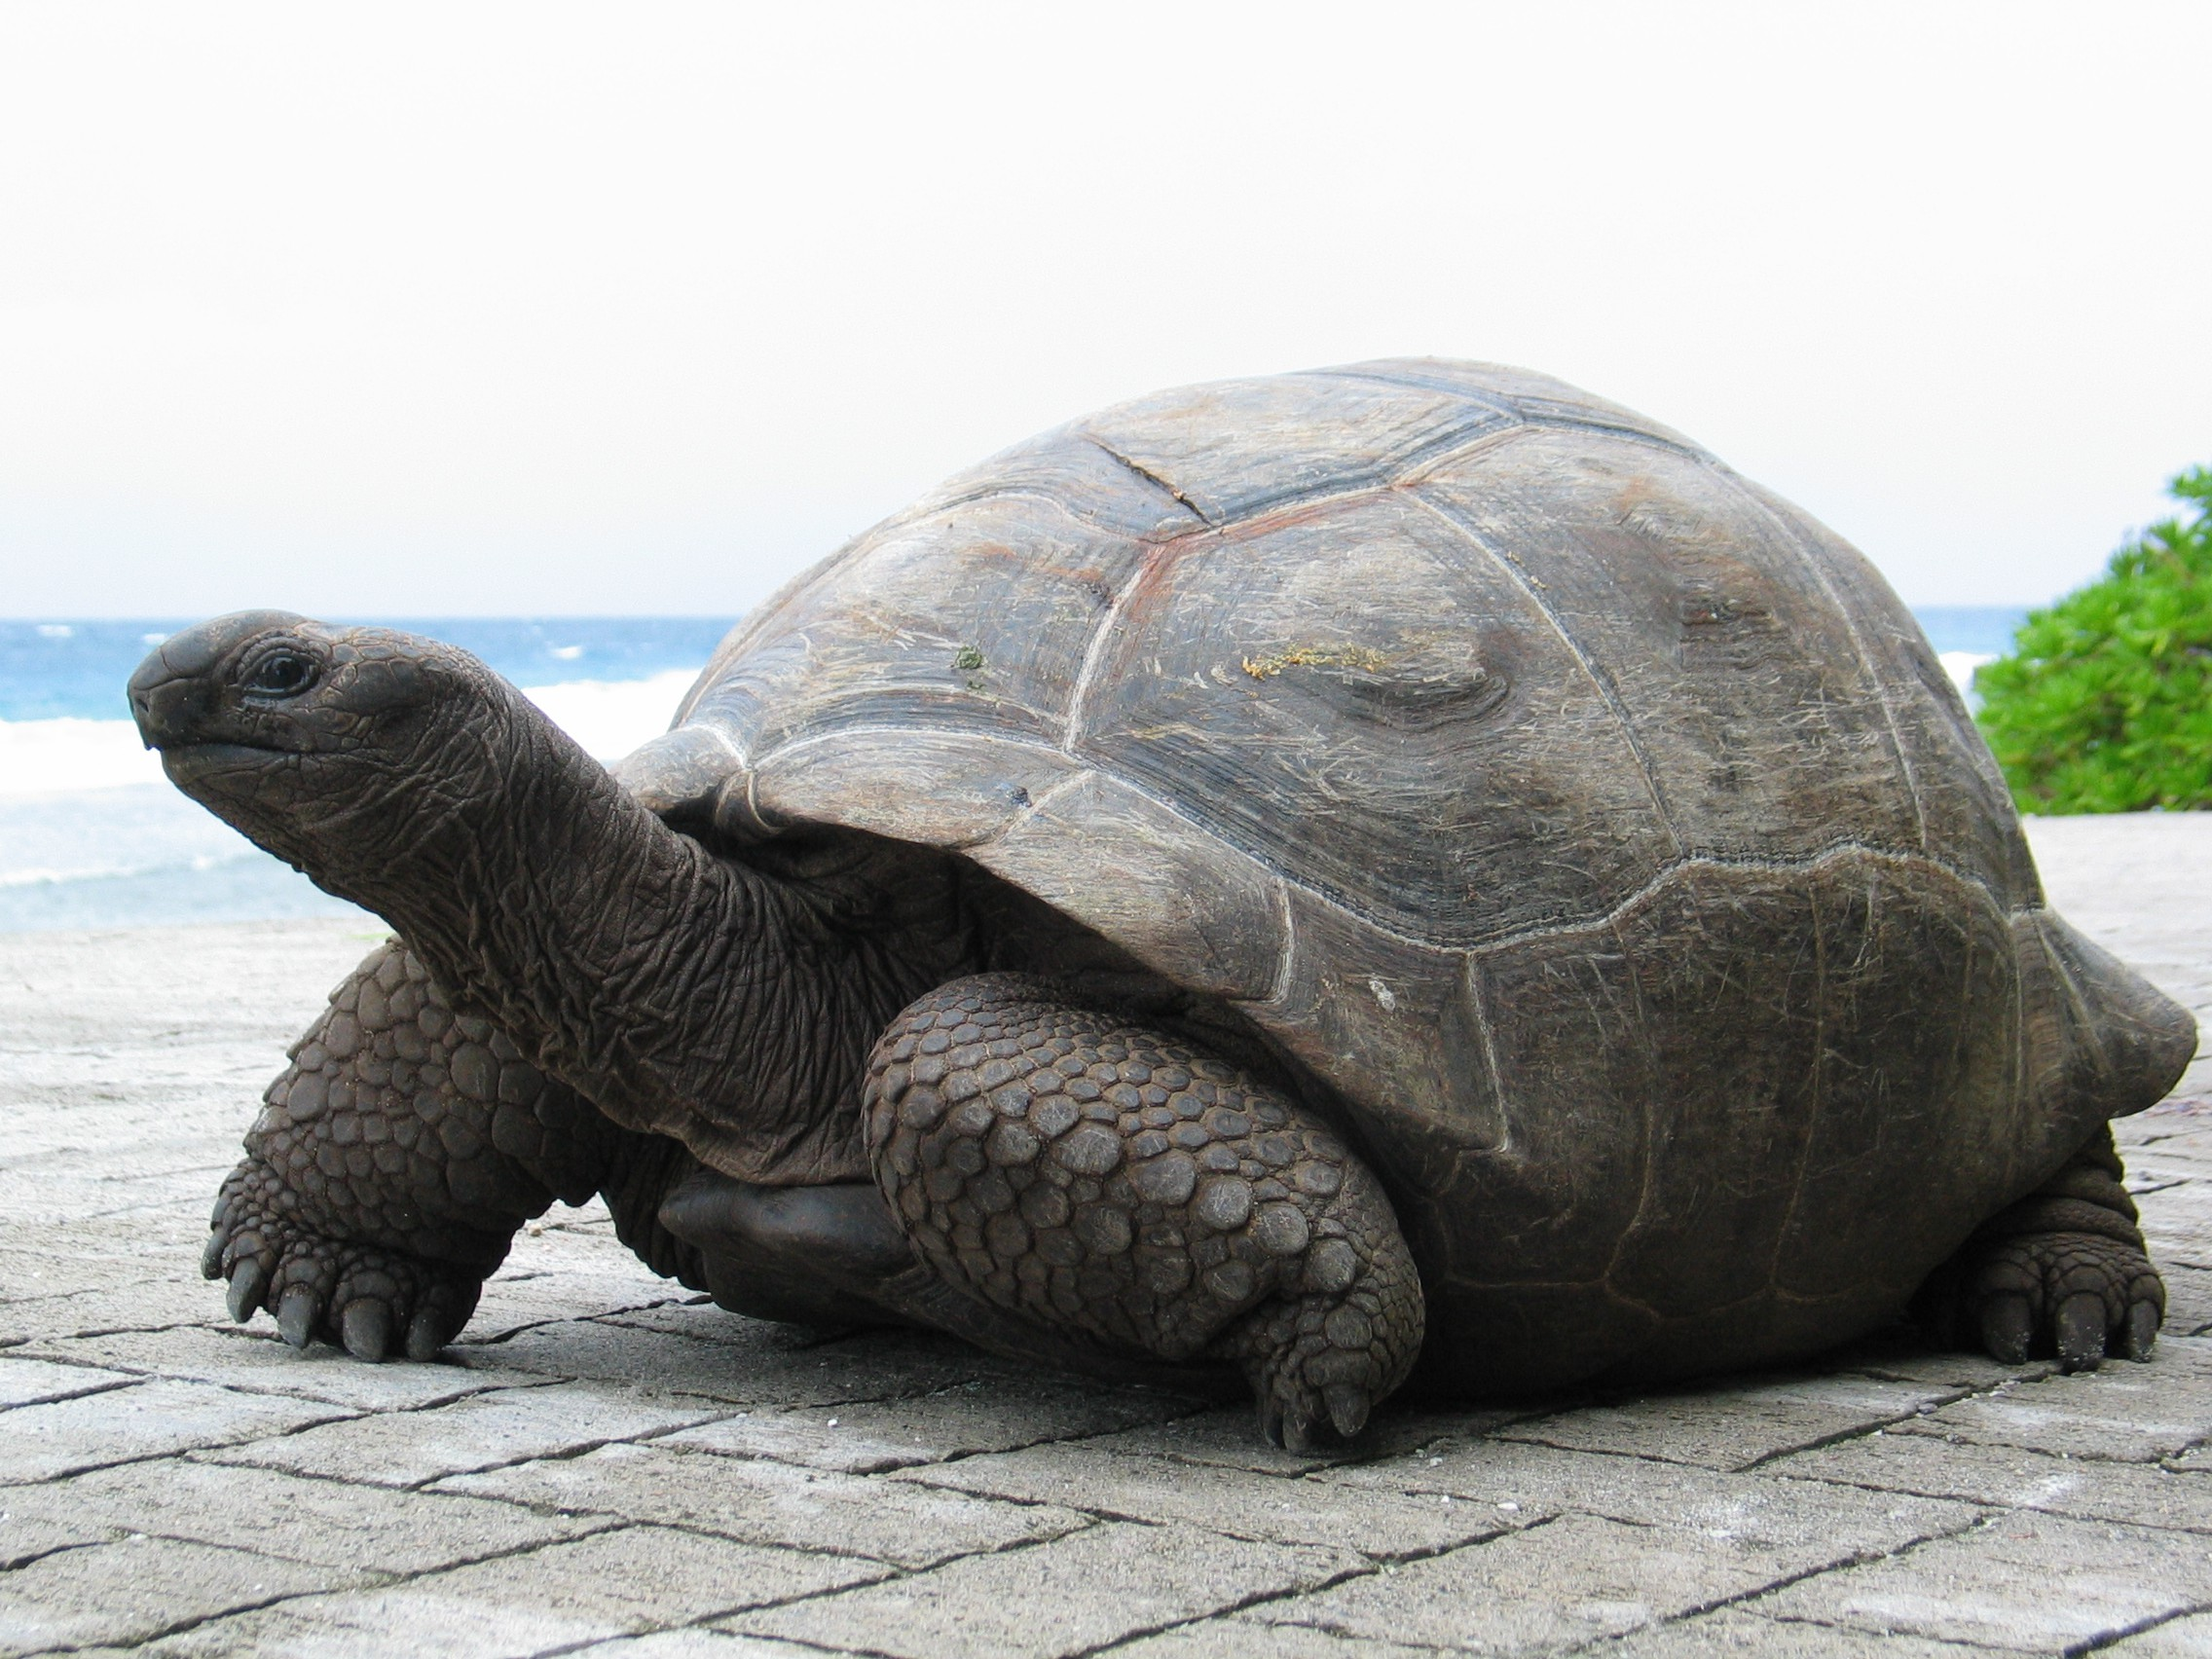 Aldabra Giant Tortoise | ©fred_pnd / flickr